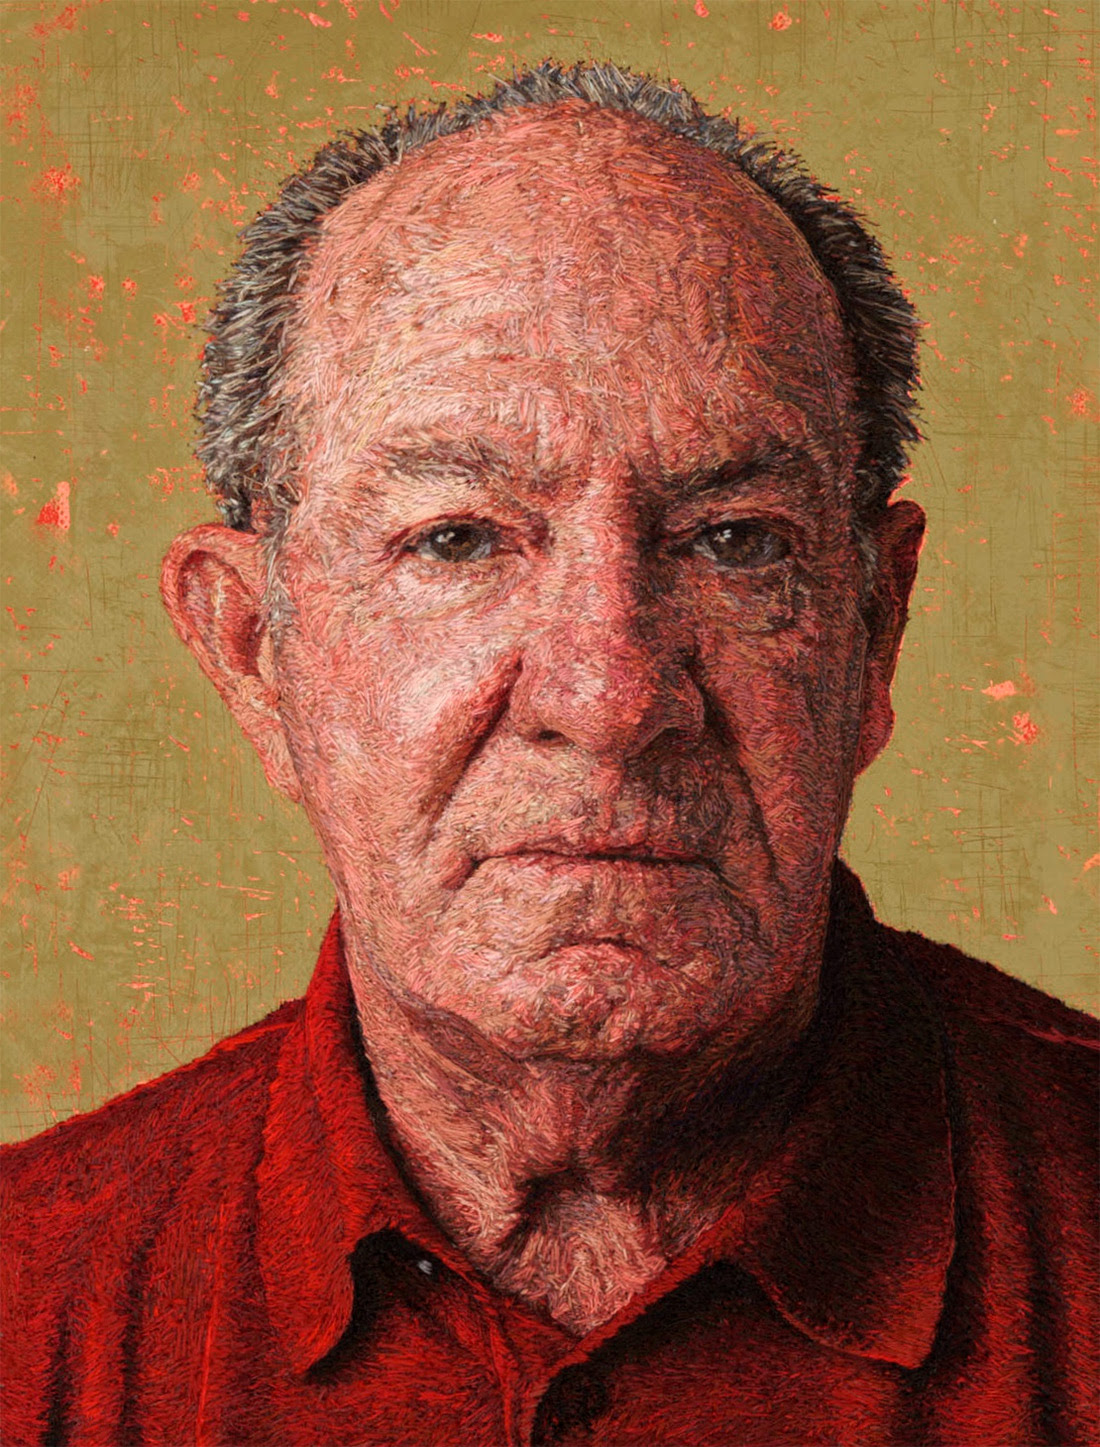 Thread Paintings: Densely Embroidered Portraits by Cayce Zavaglia portraits photorealism embroidery